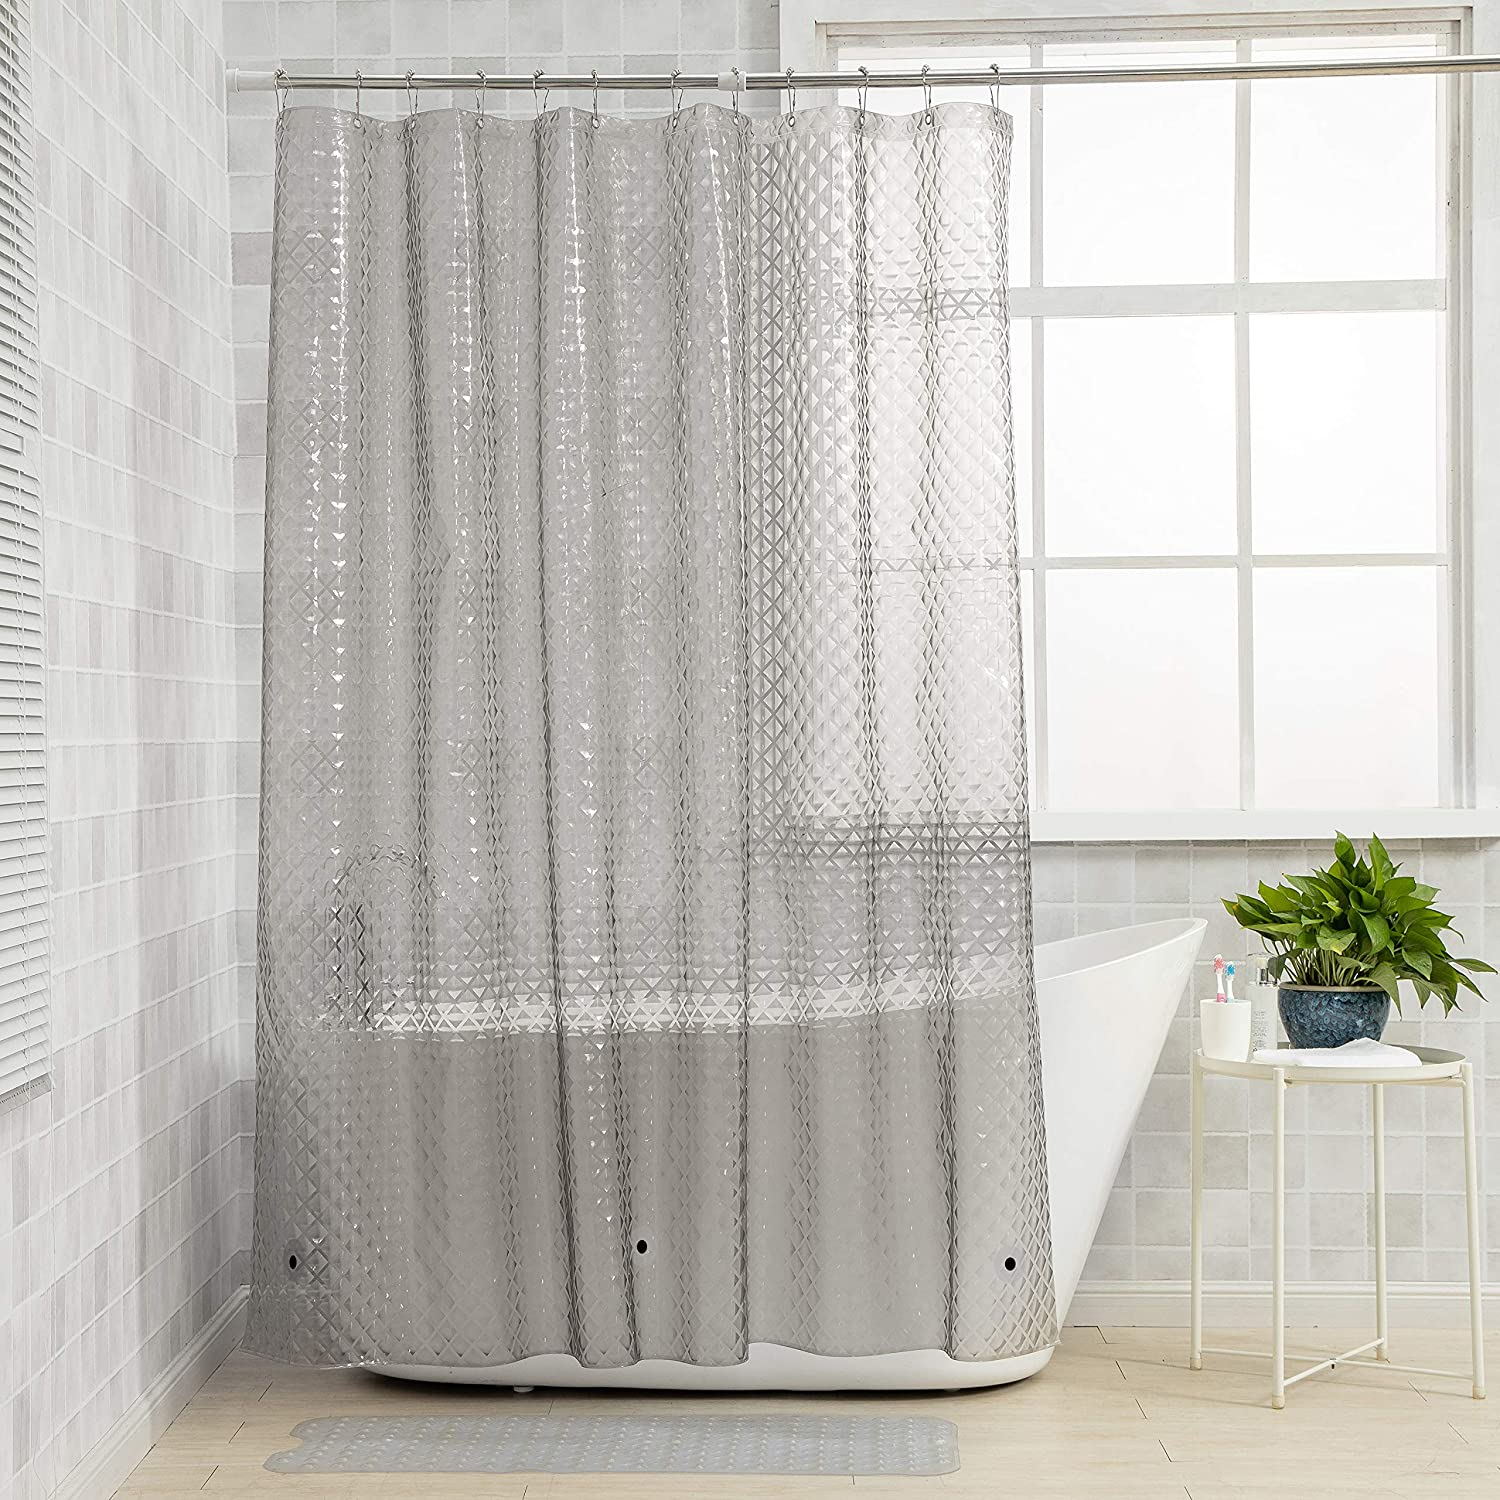 NTBAY Columbus Mall EVA Max 52% OFF Clear Shower Curtain Cur Repellent Water Liner